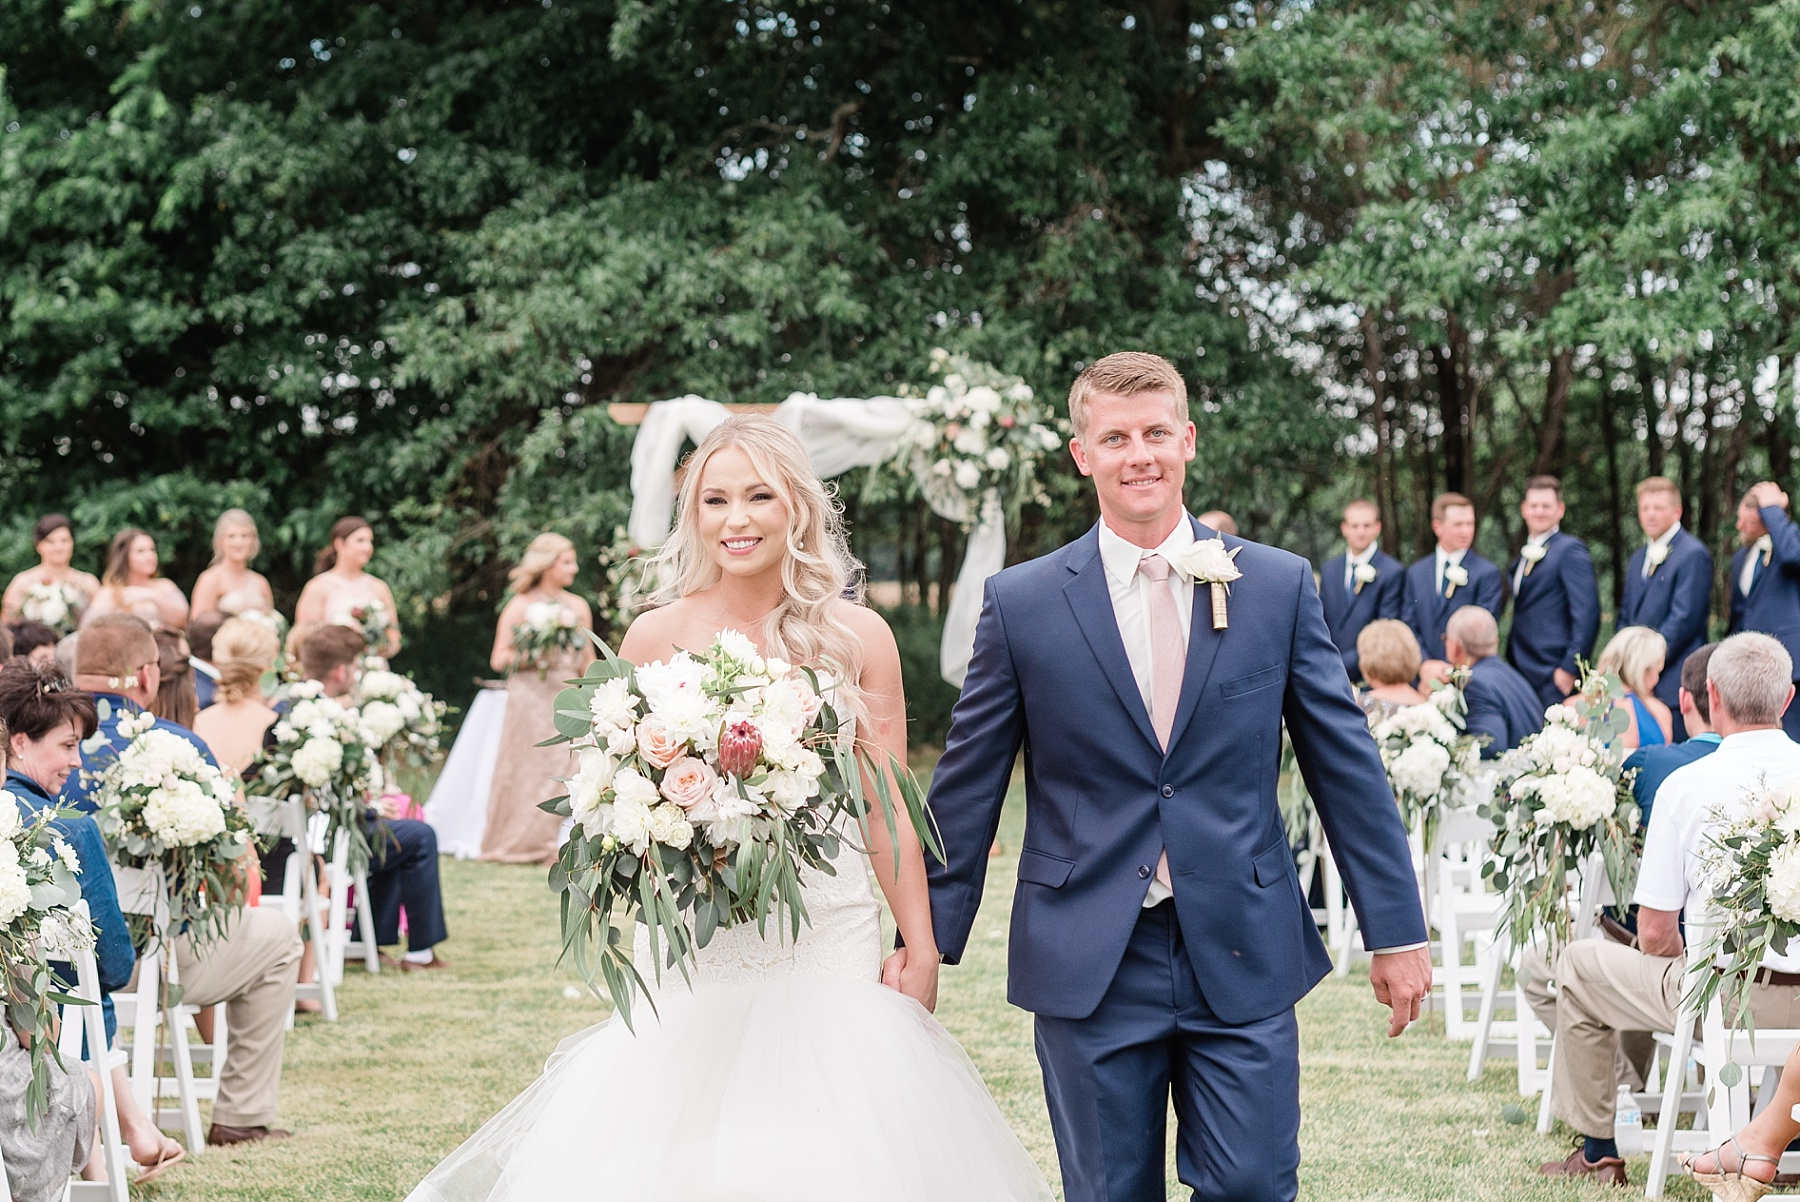 Cody and Mariah Dudenhoeffer Wedding at Emerson Fields Venue by Kelsi Kliethermes Photography_0066.jpg